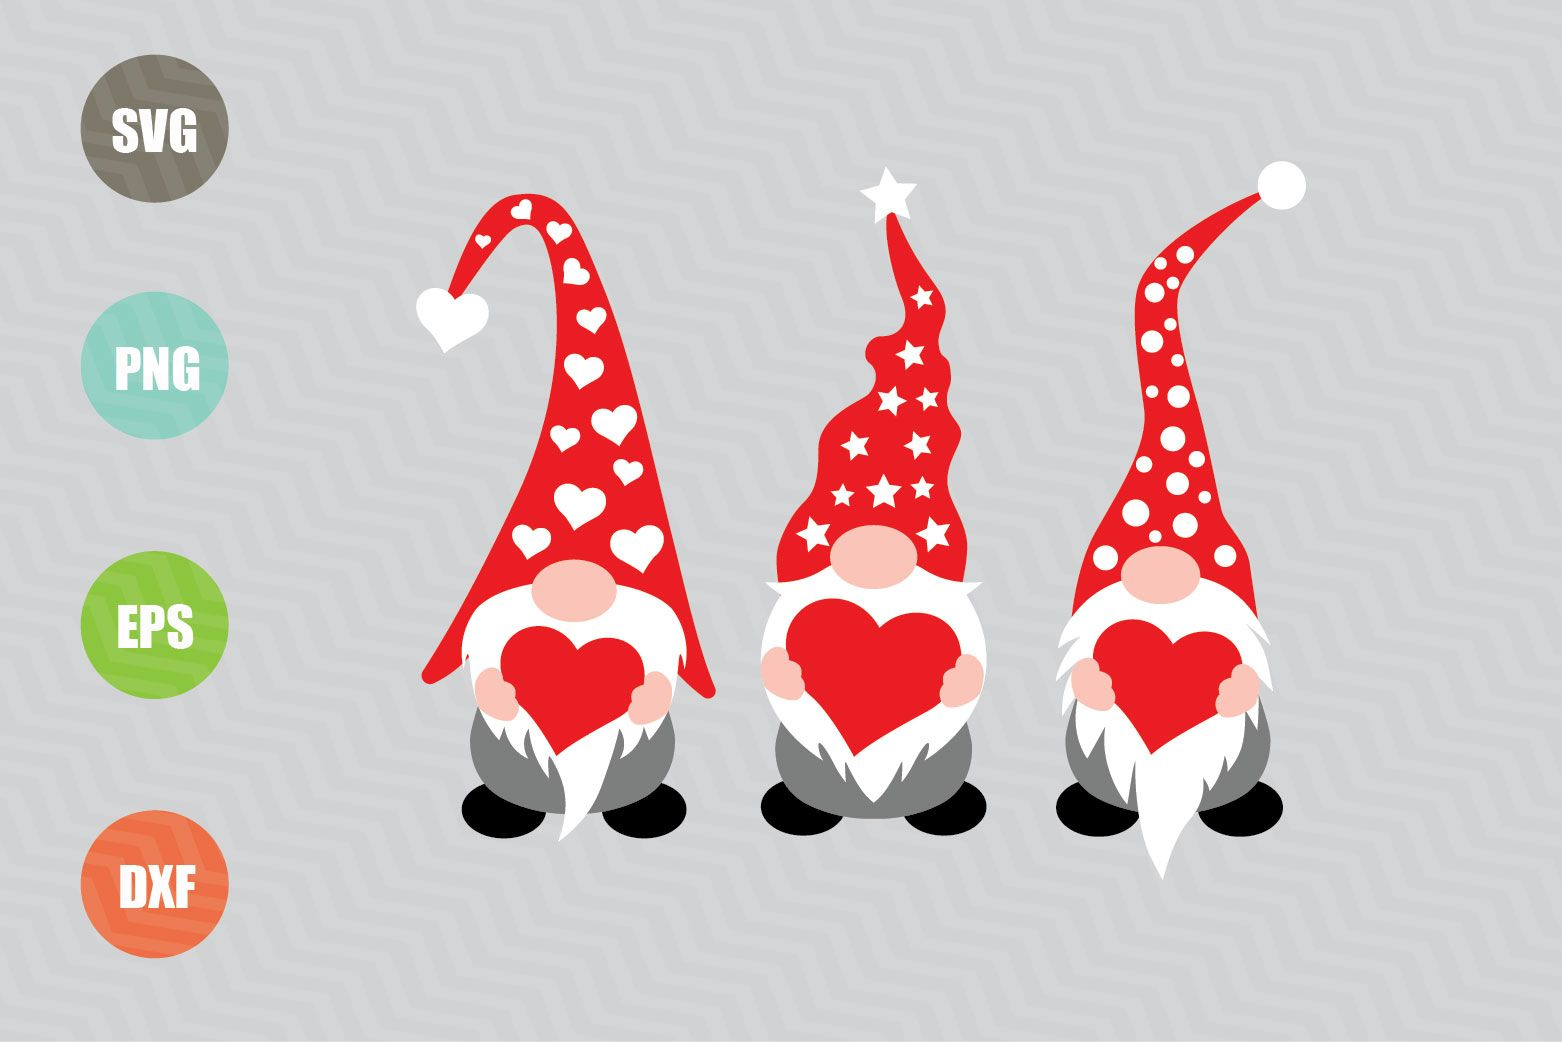 These Three Gnomes Holding Hearts Svg Files Are Perfect For Shirts Mugs Home Decor Tumblers Cards Party Decor And More In 2020 Svg Free Clip Art Graphic